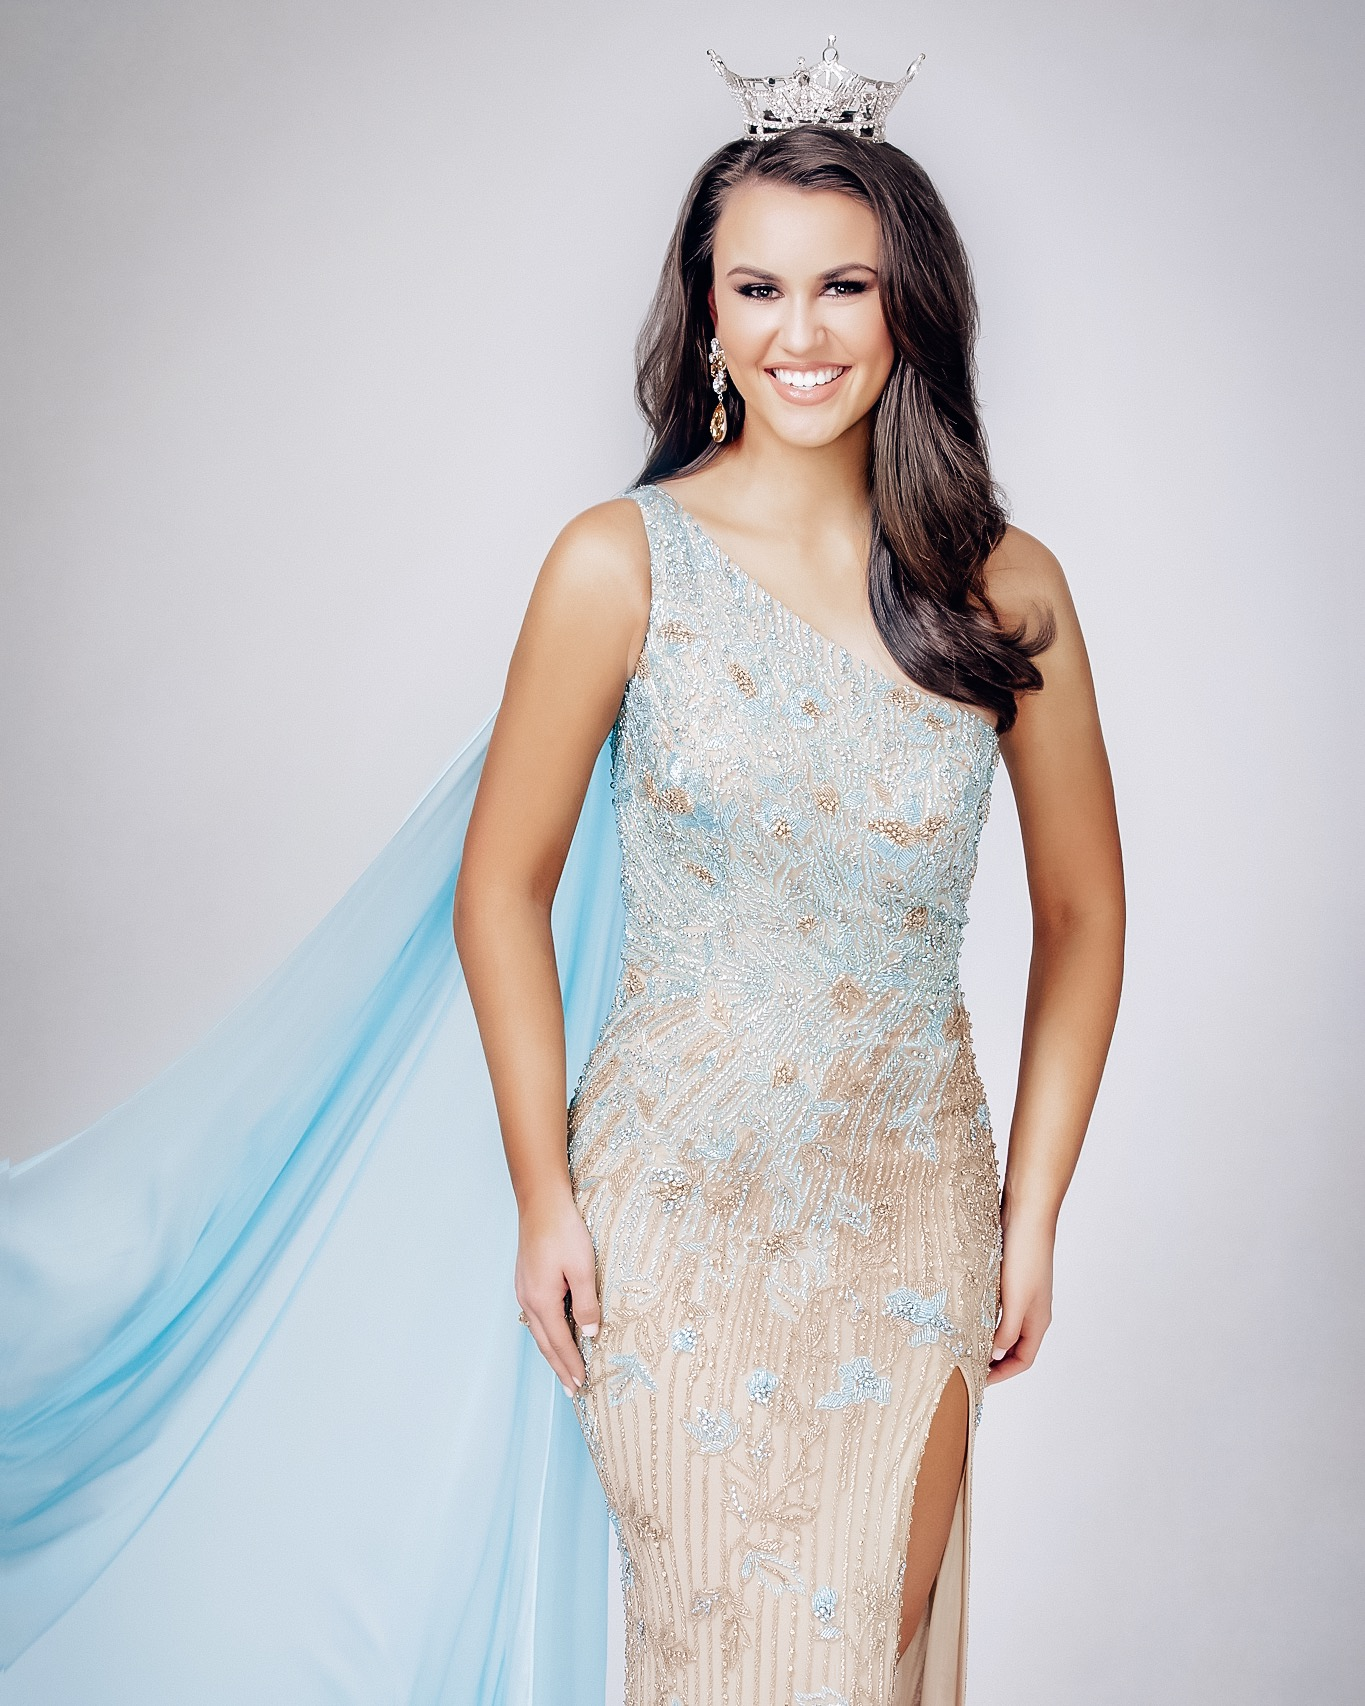 Photo: Zac Grimaldo Photography, Hair and Makeup: Nicole West, Gown: Sherri Hill from Terry Costa and Sergio Armas